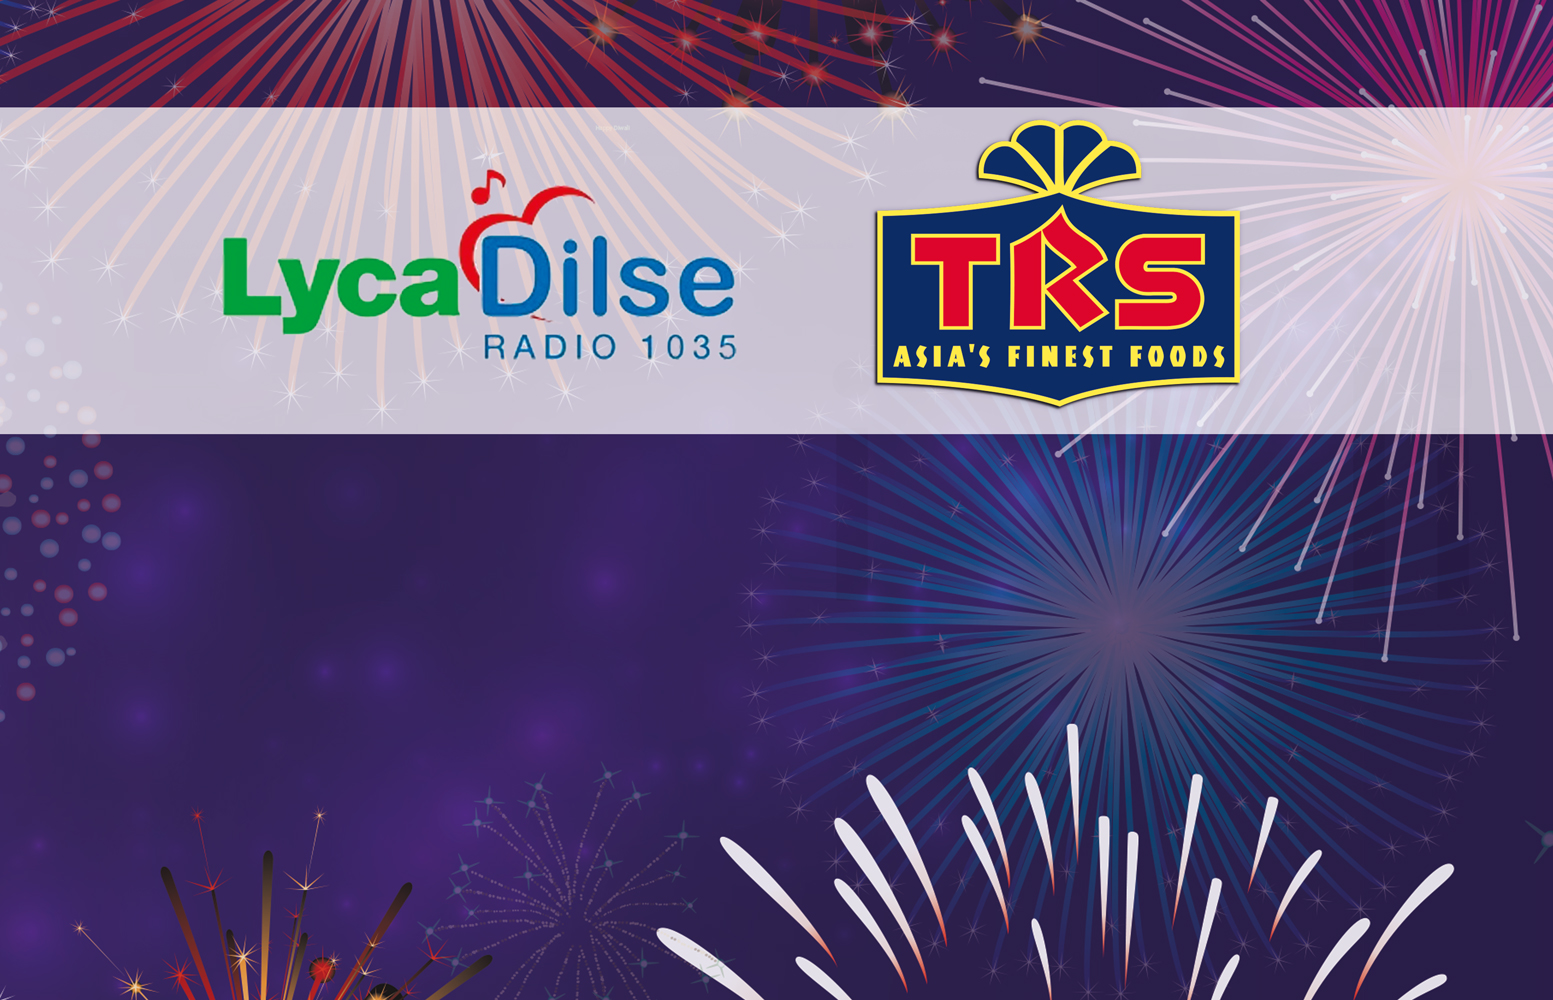 Winners of the TRS Lovers of Flavour Diwali competition announced news image